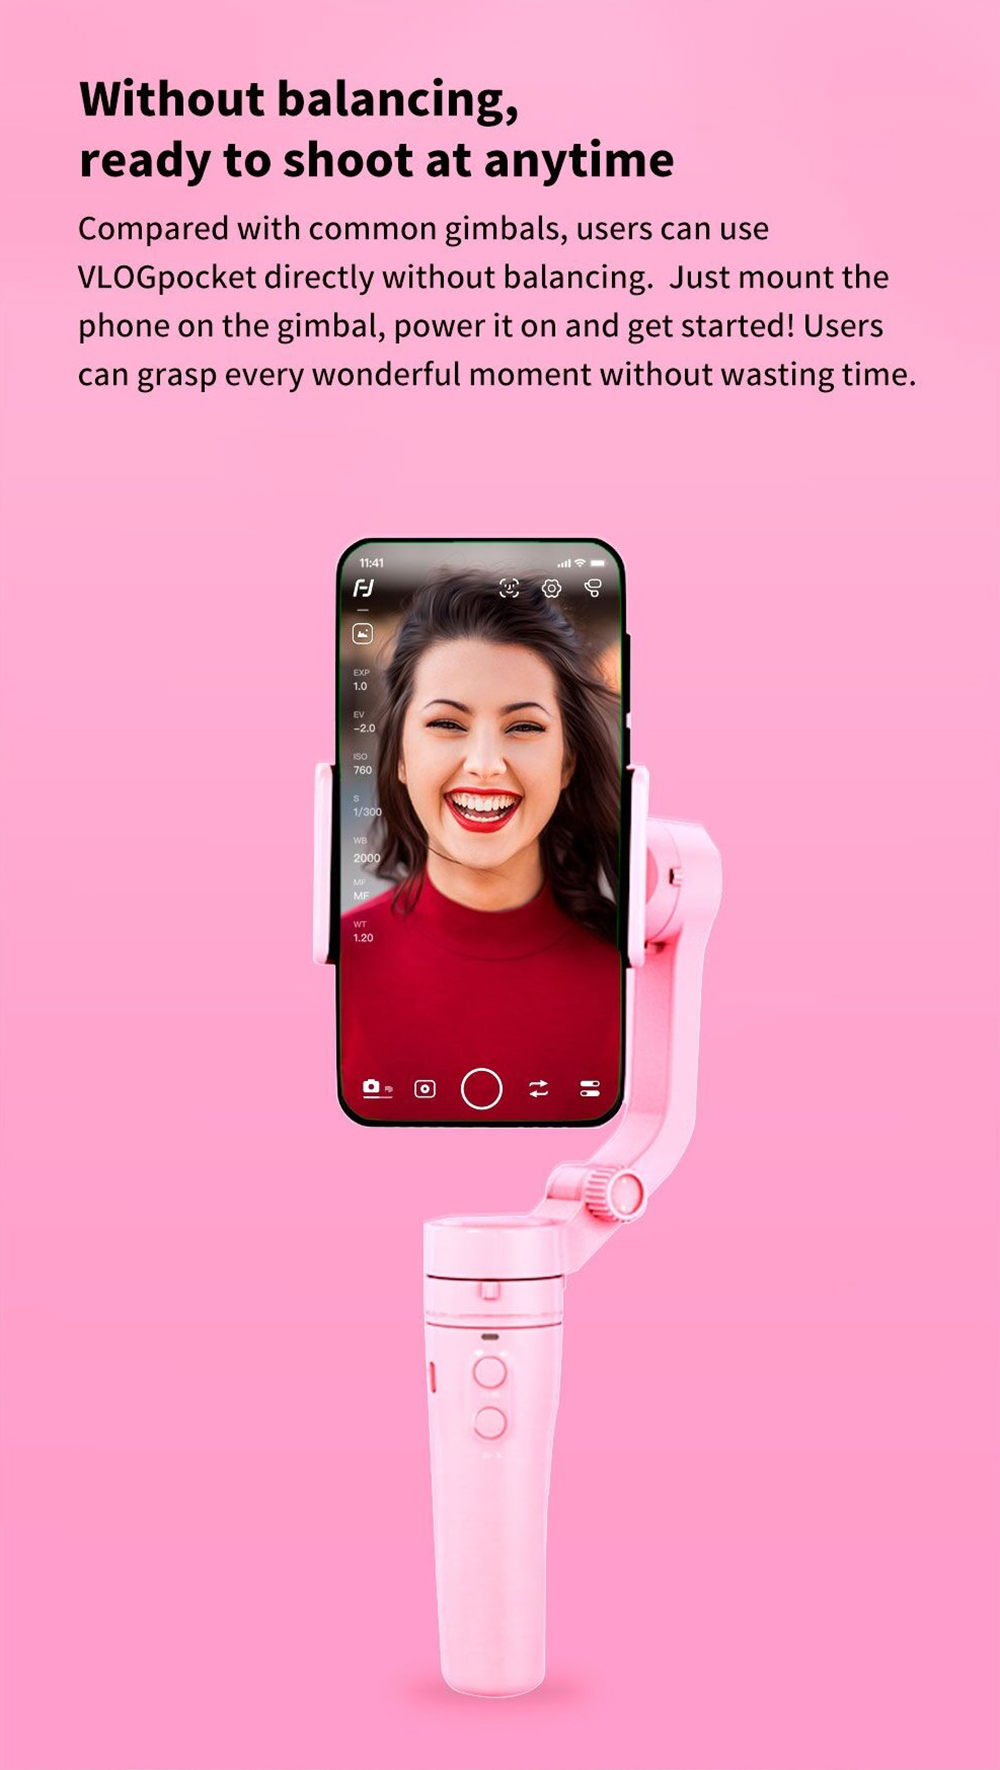 FeiyuTech Vlog Pocket Foldable 3-Axis Handheld Gimbal Smartphone Stabilizer Selfie Stick for iPhone 11 X XS / Samsung Note 9 - Pink